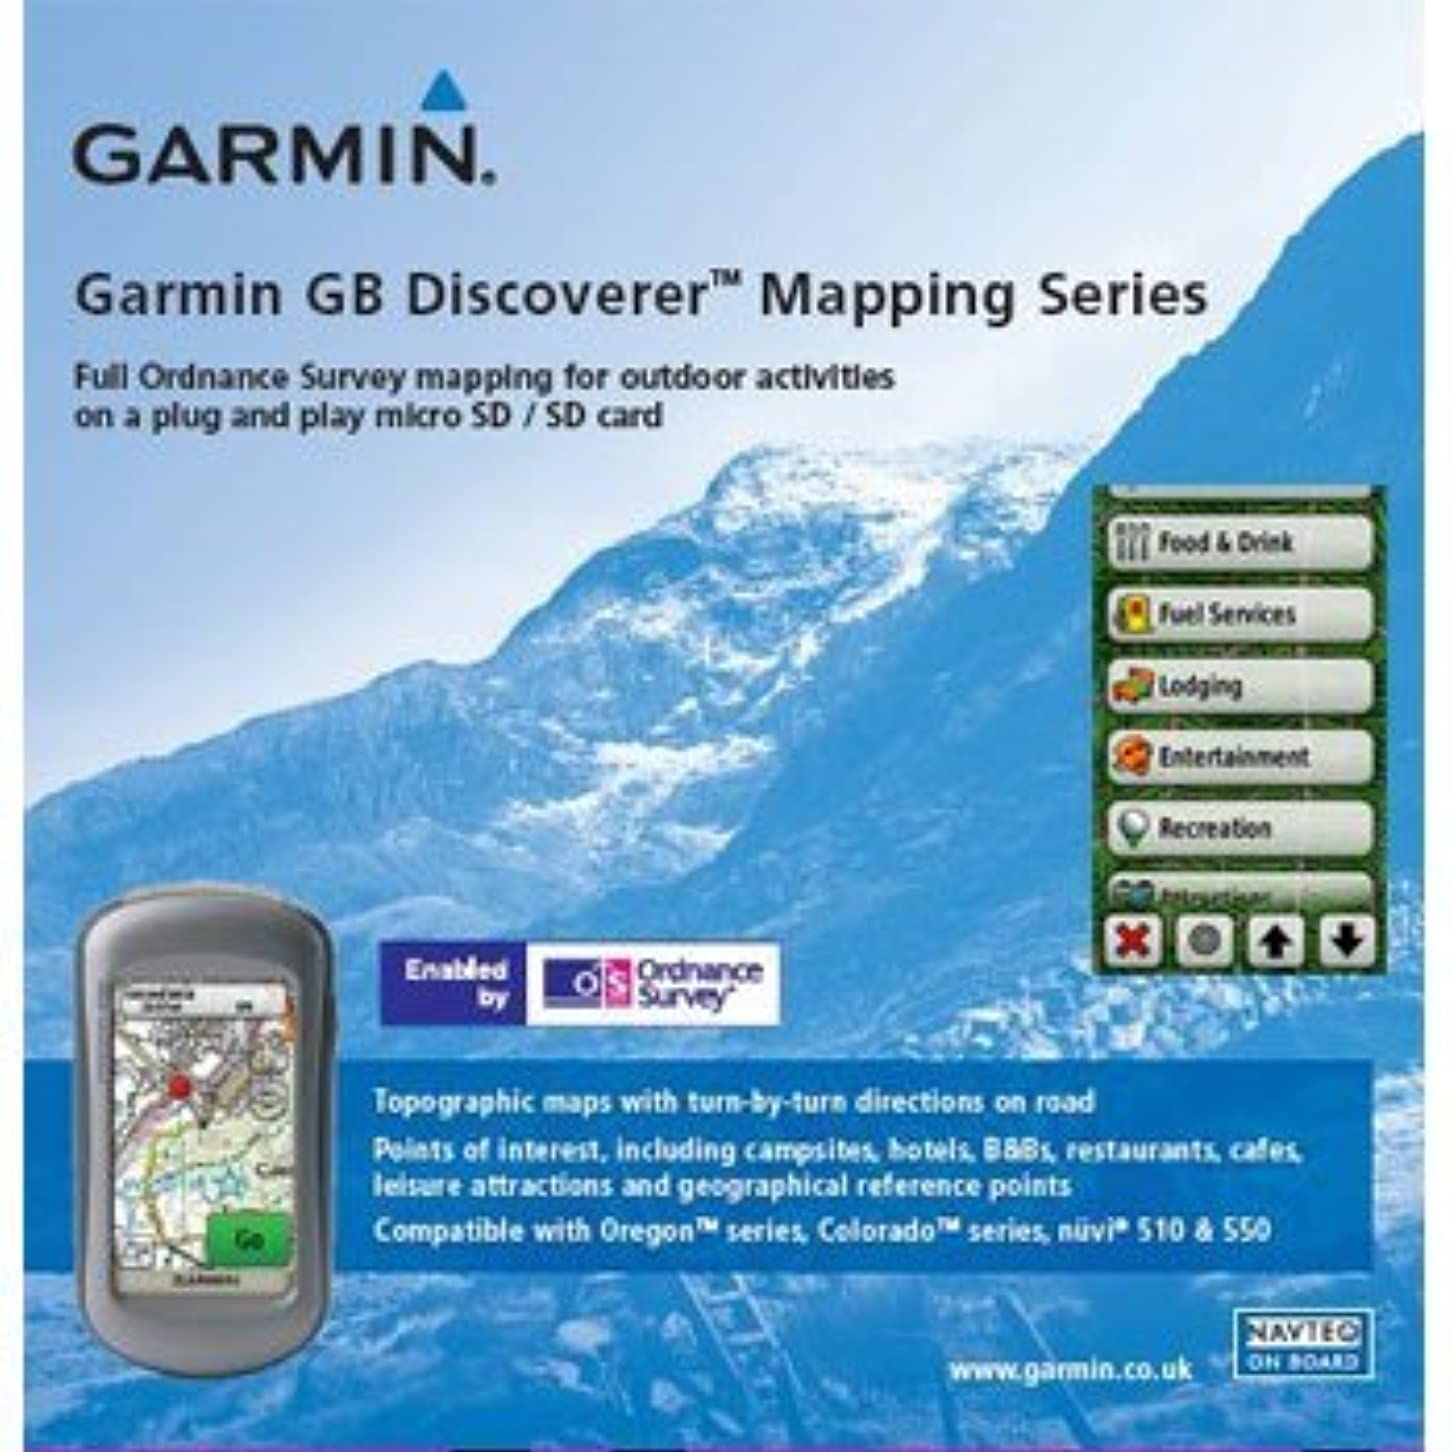 テロリスト狂信者読み書きのできないGarmin GB Discoverer 2010 Loch Lomond/Trossachs Topographical Map microSD Card [並行輸入品]